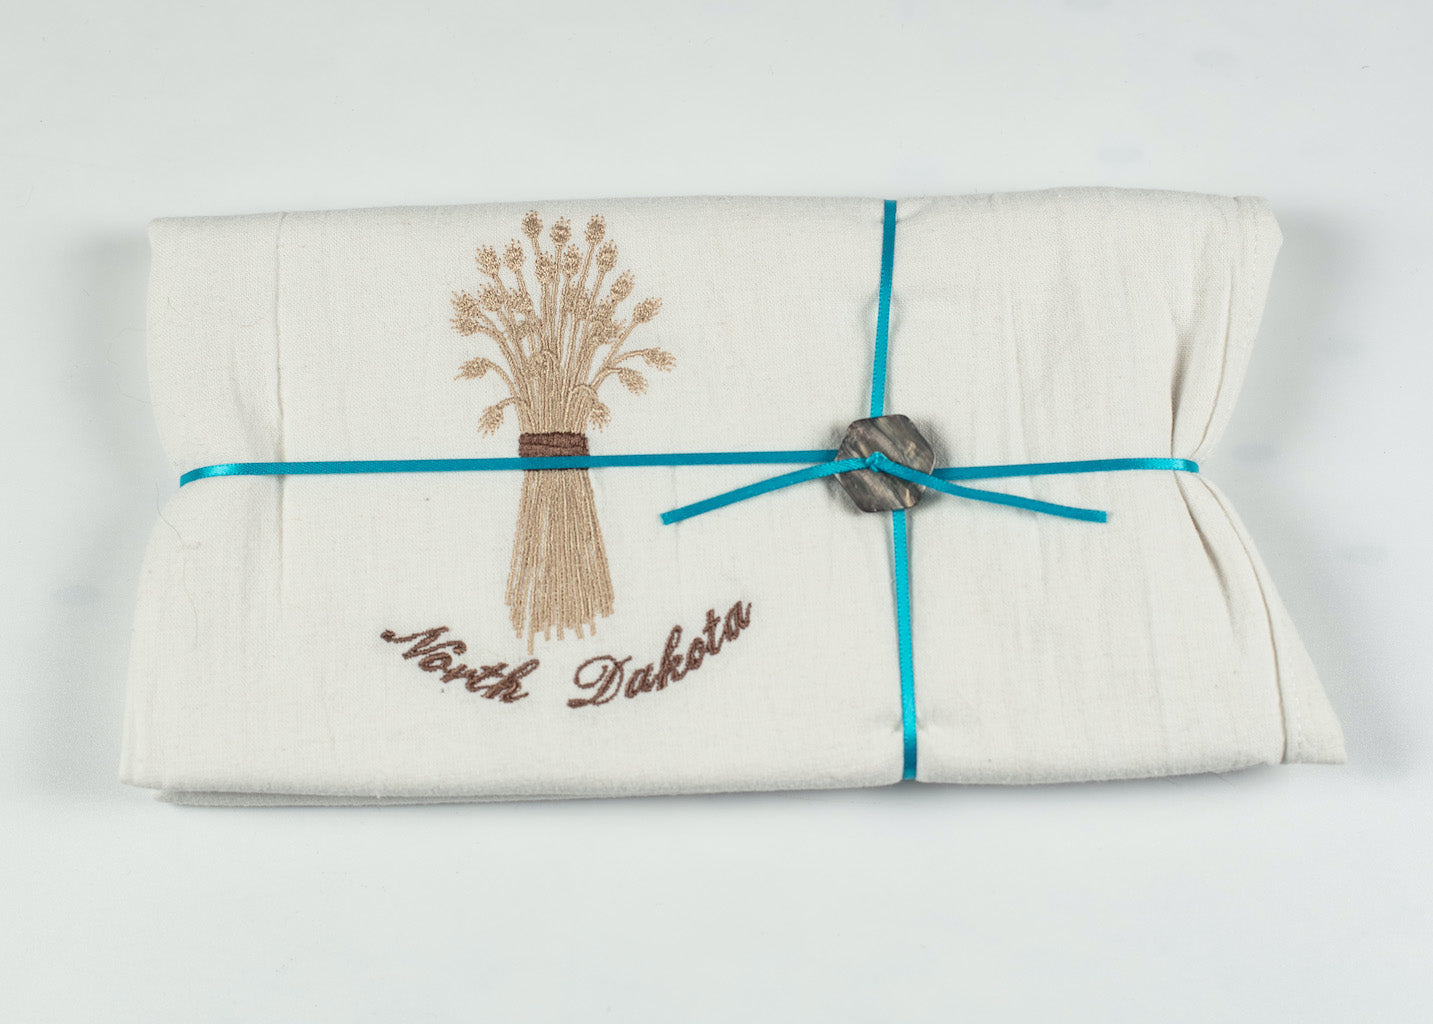 "NORTH DAKOTA EMBROIDERED WHEAT FLOURSACK TOWEL 32""x 36"" MADE IN ST. BONIFACIUS MN"